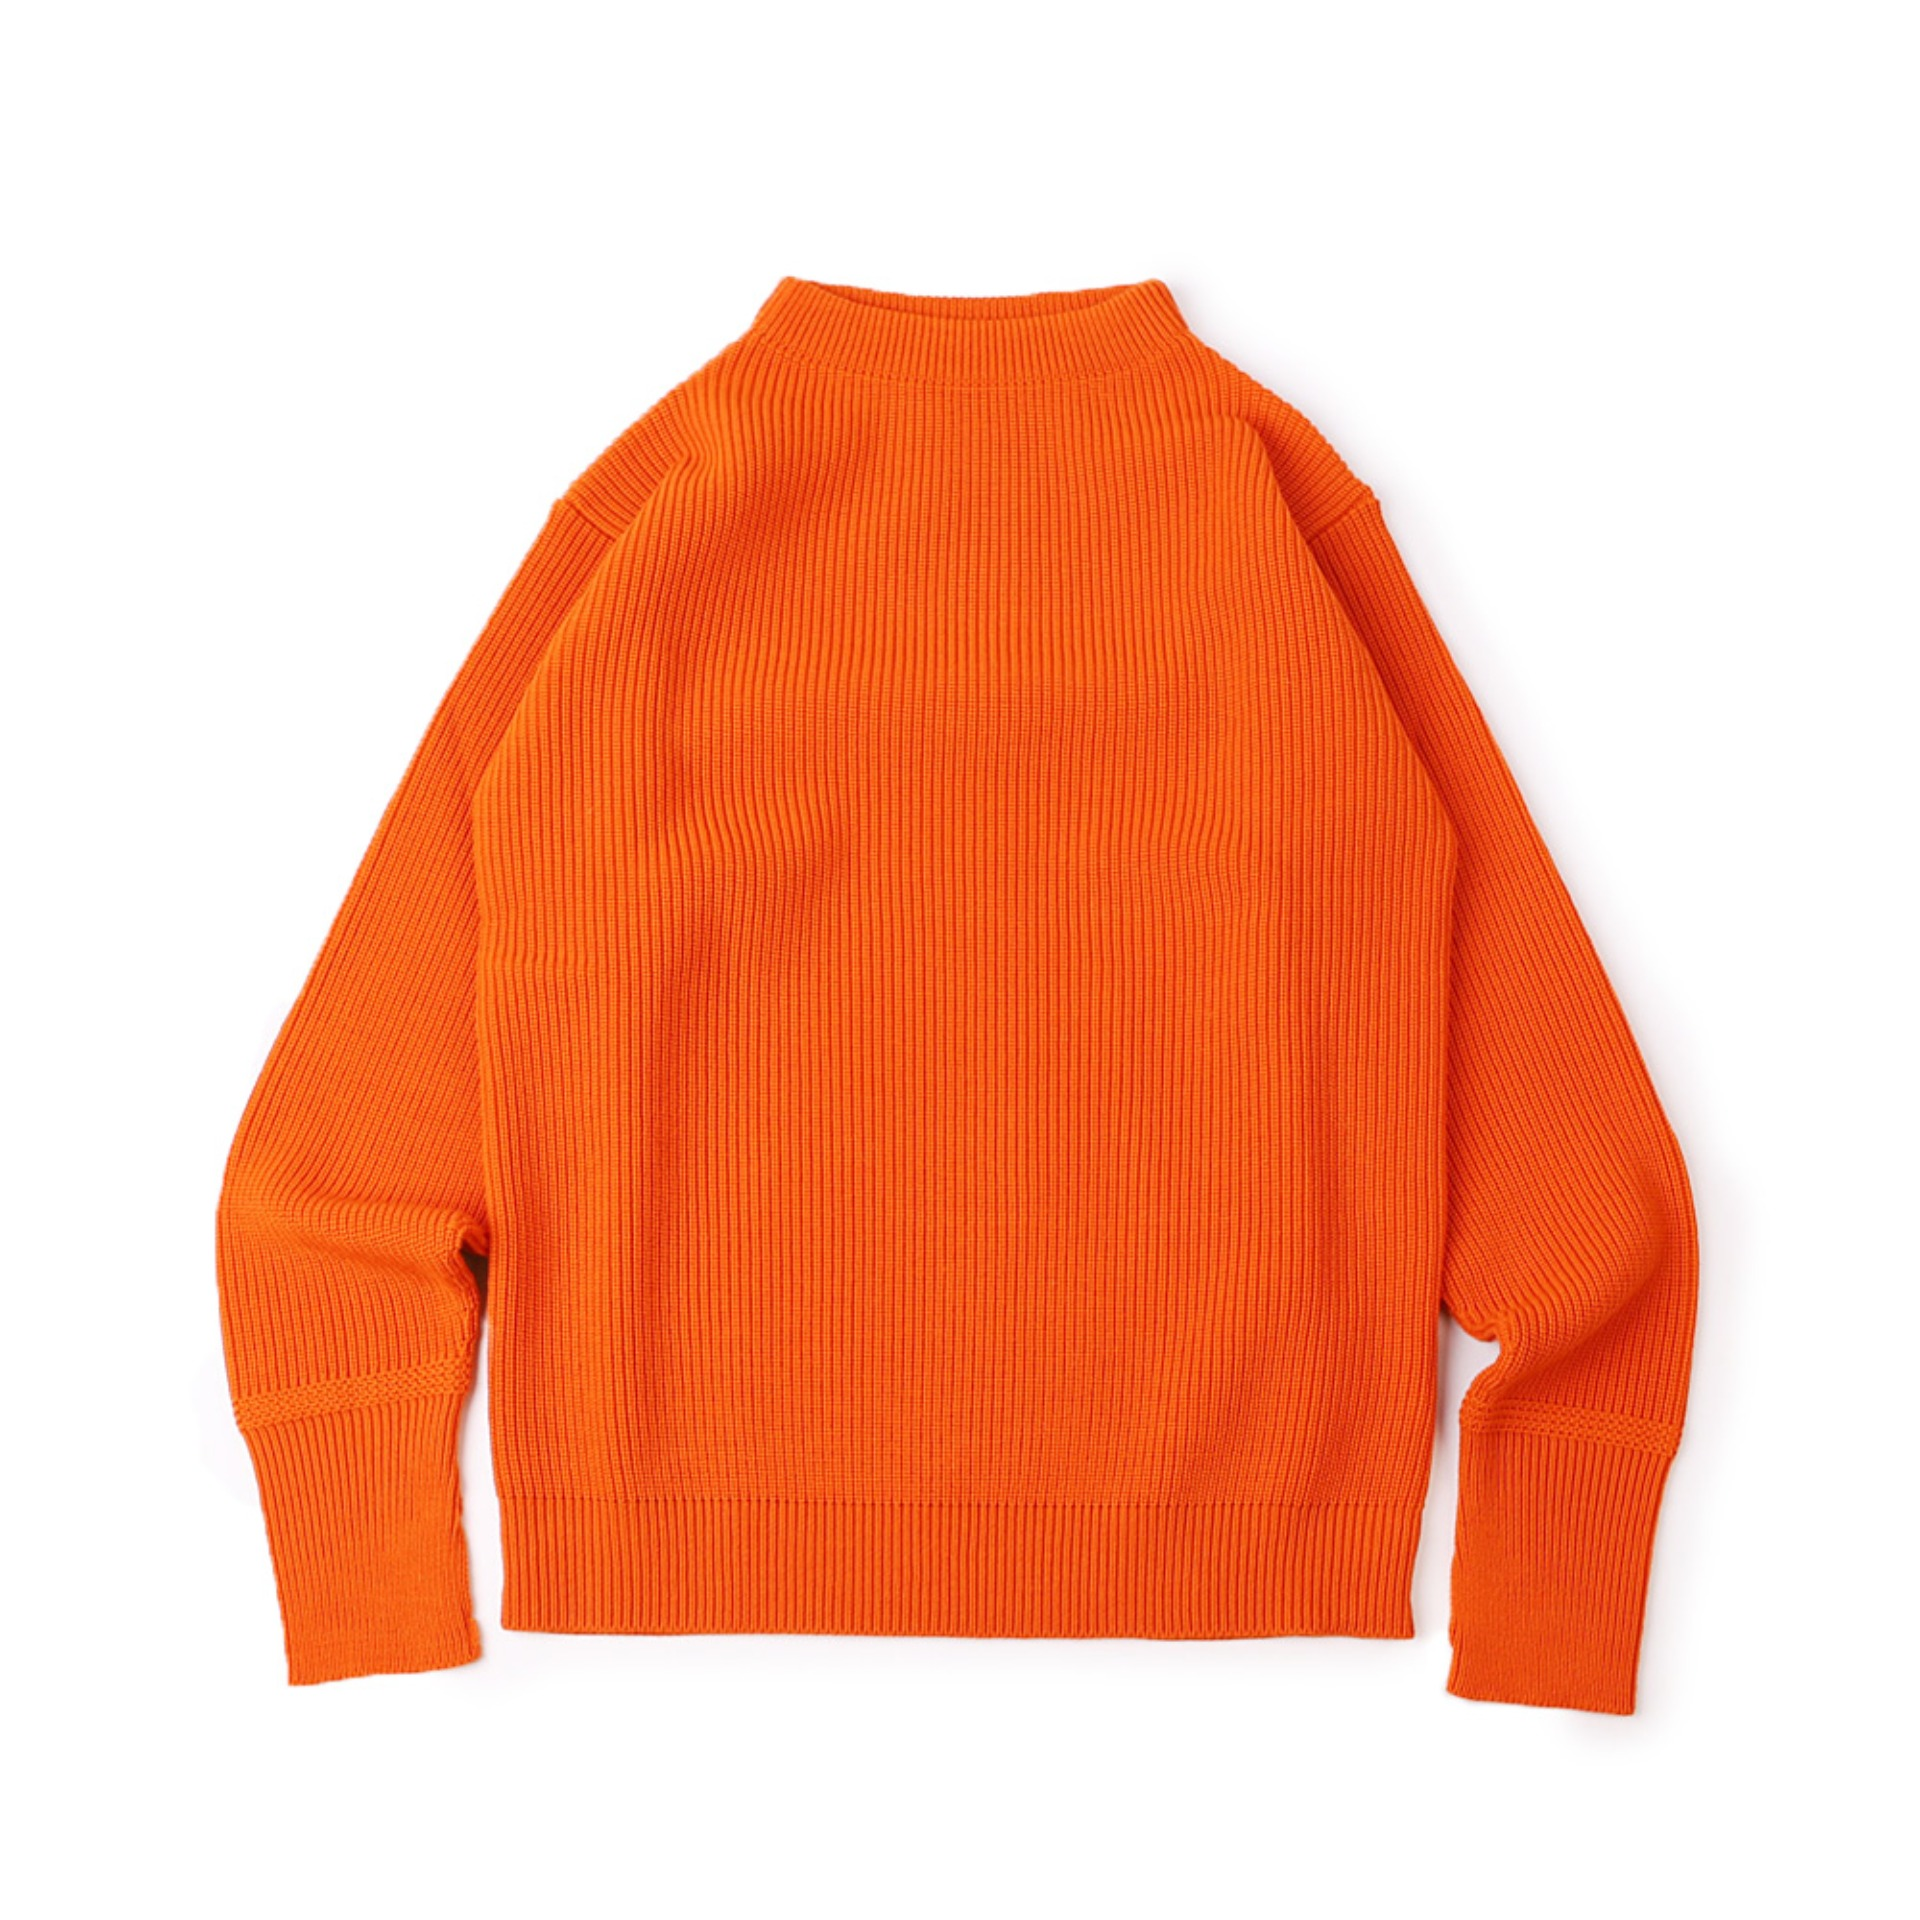 SAILOR CREWNECK SWEATER (Orange)